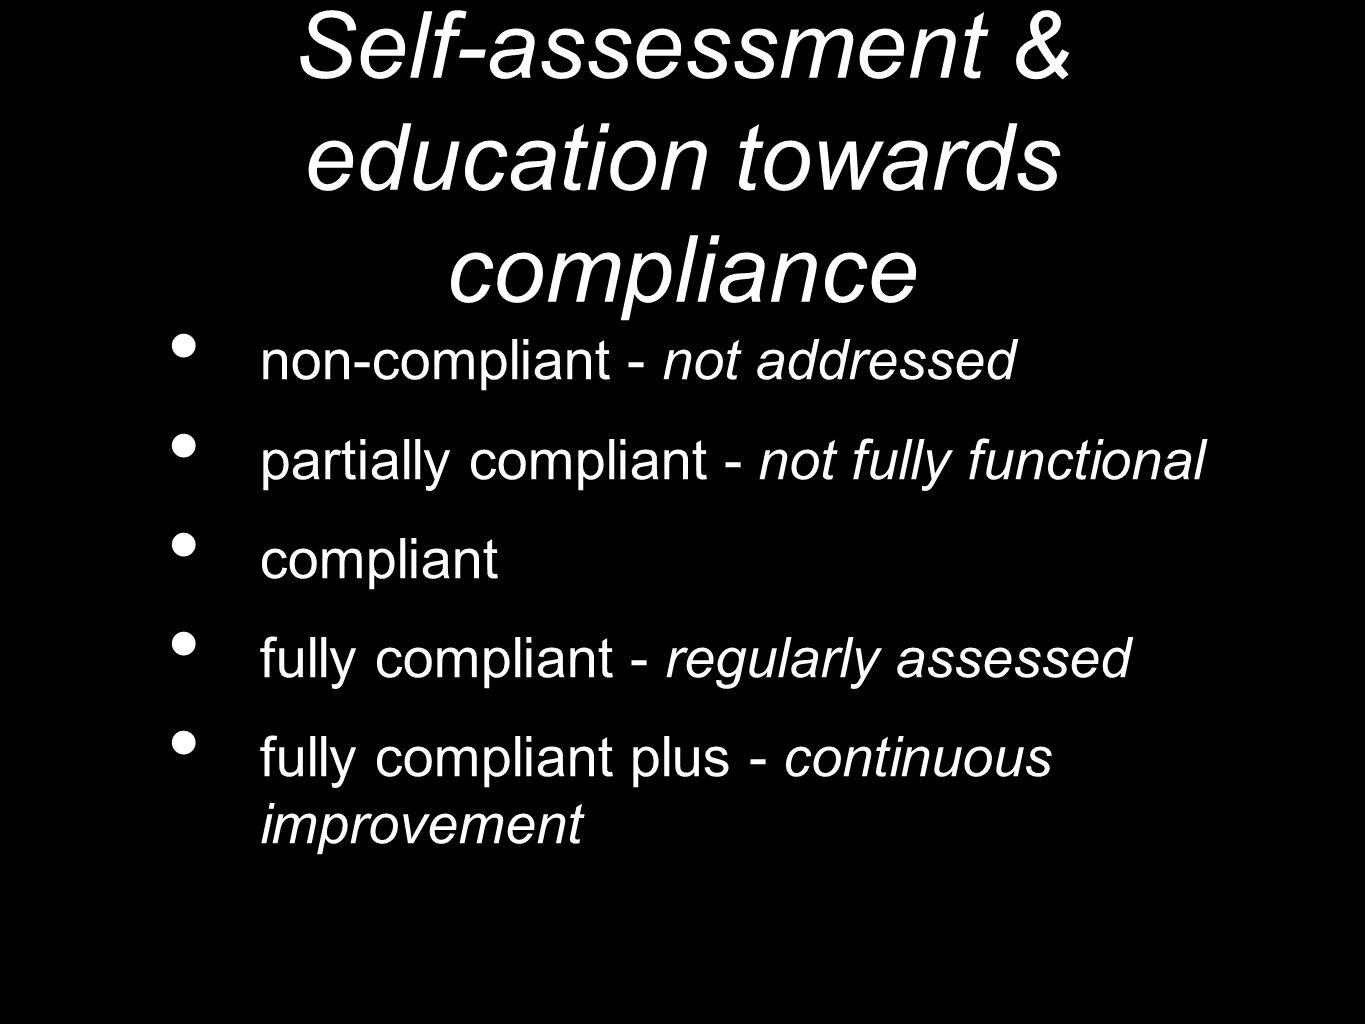 Self-assessment & education towards compliance non-compliant - not addressed partially compliant - not fully functional compliant fully compliant - regularly assessed fully compliant plus - continuous improvement